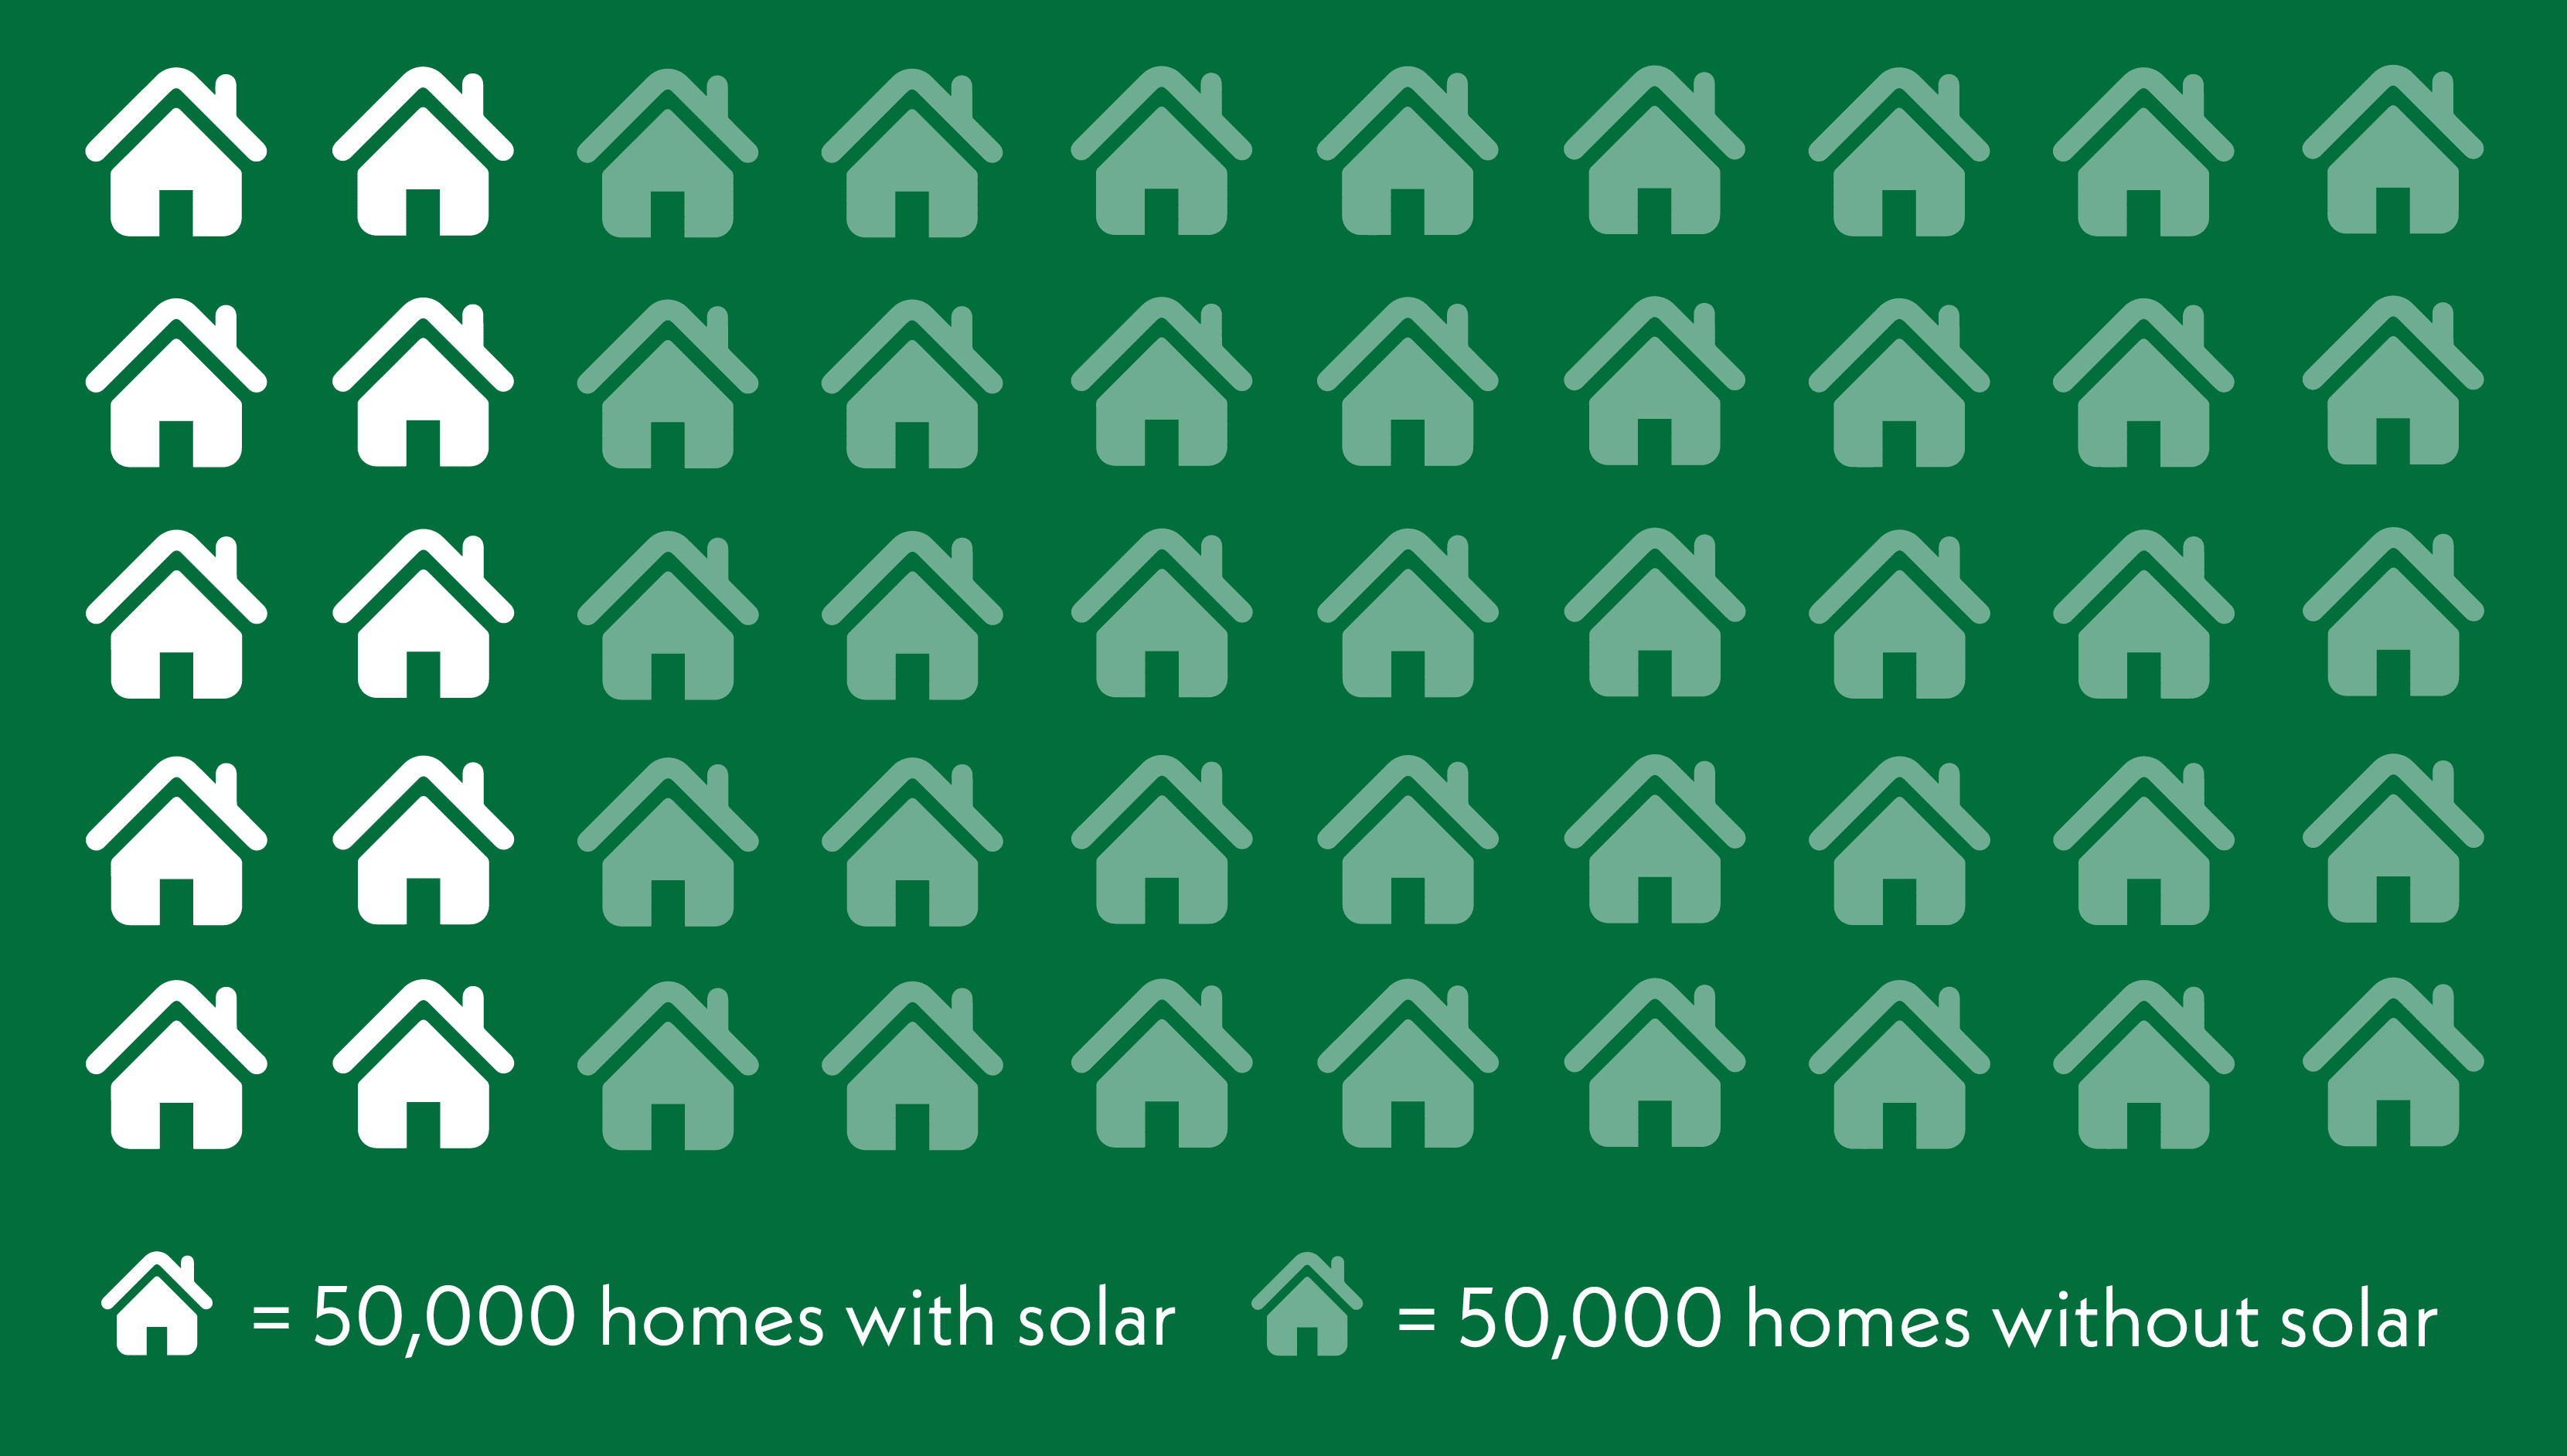 50000 homes with solar vs 50000 homes without solar